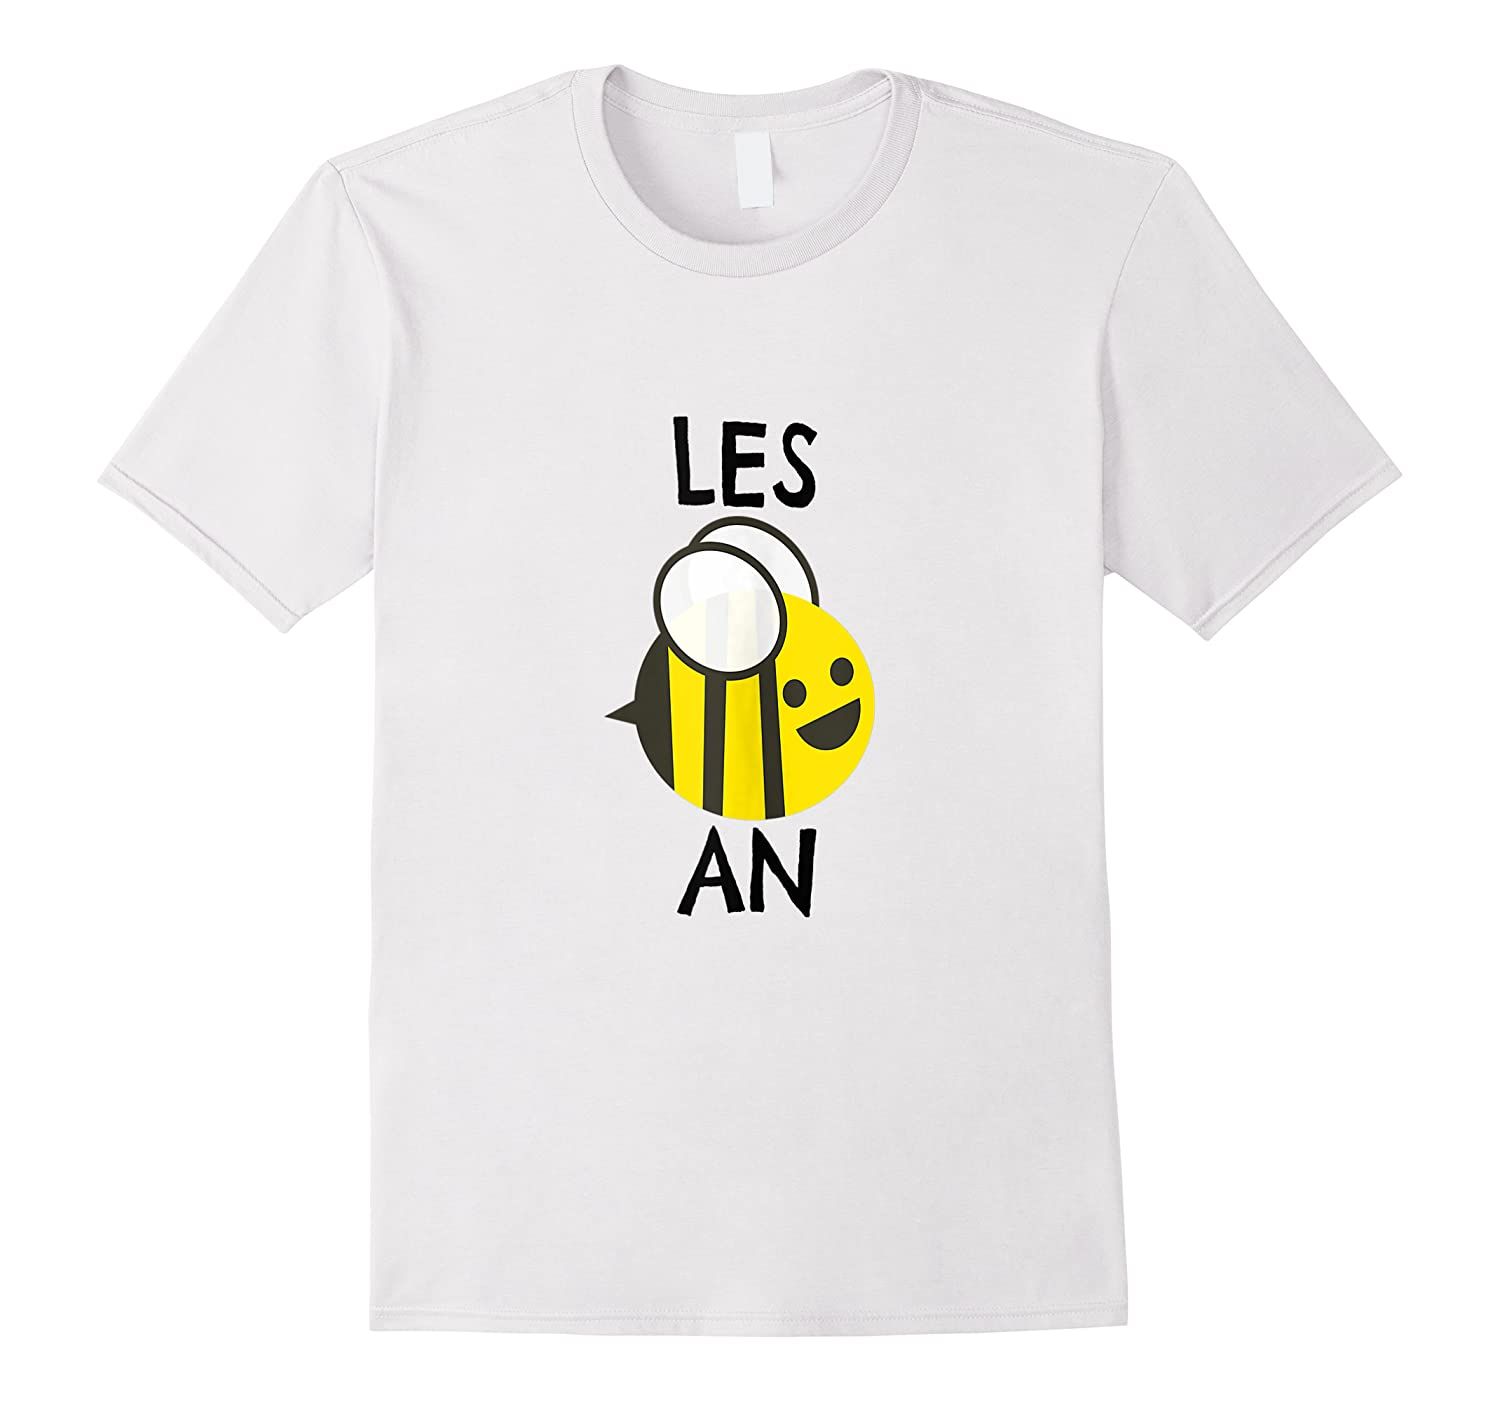 Cute And Funny Lesbian Bee Les Bee An Lgbt Pride Gift Shirts